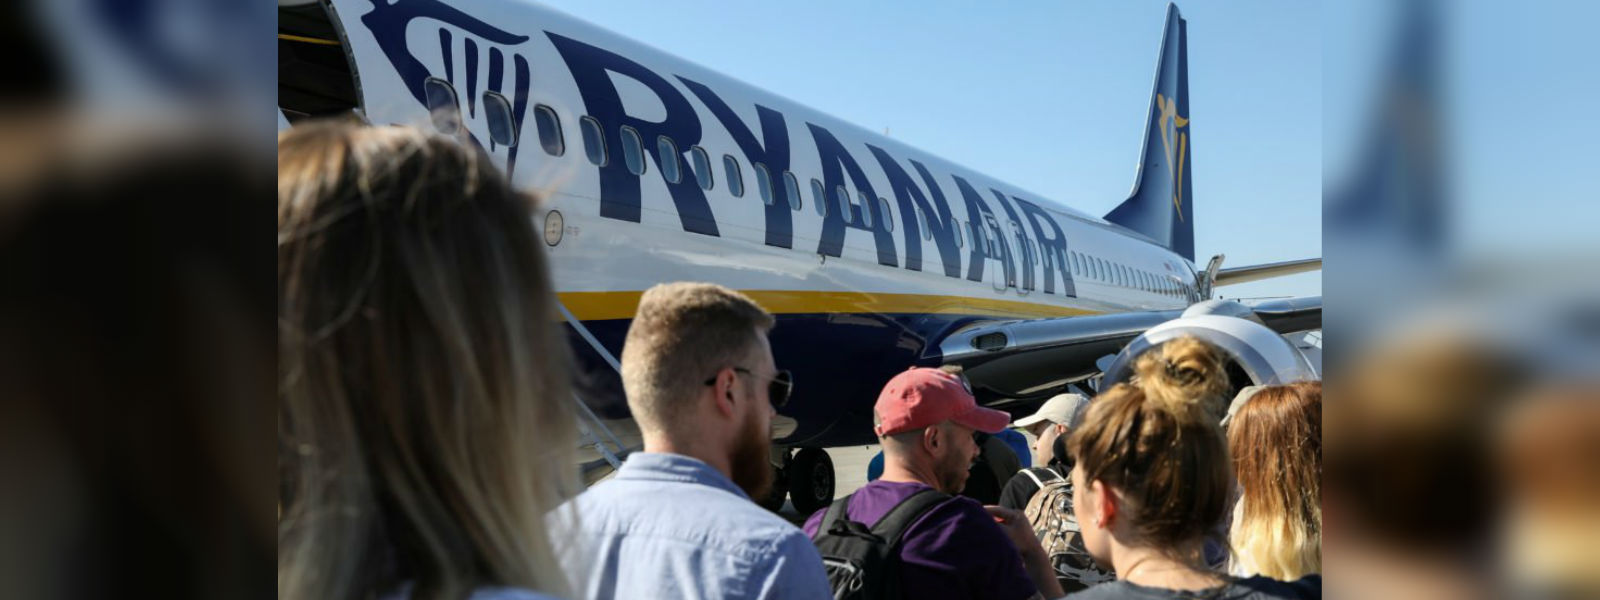 Ryanair halves 2020 growth plans on Boeing MAX delays